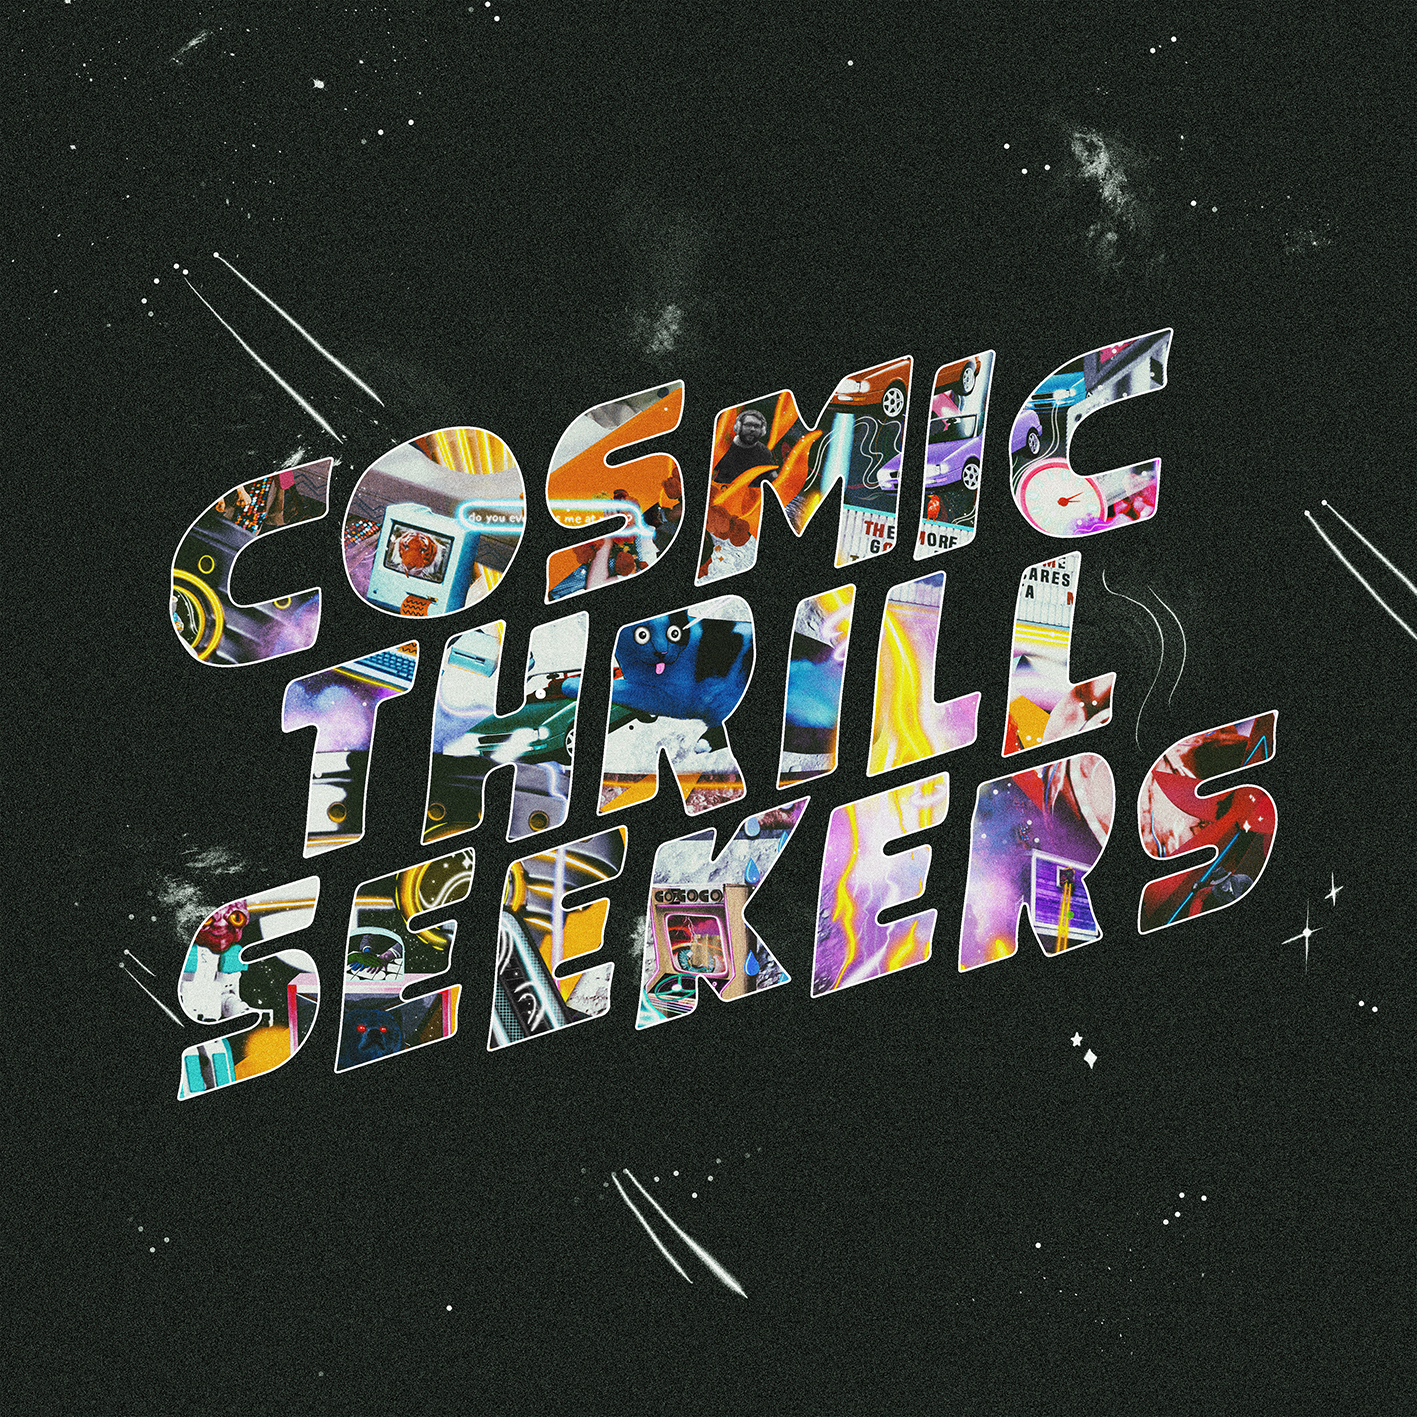 Cosmic Thrill Seekers    Tracklist :  ACT I The Heart / Passenger 1. I Lost My Life 2. Lauren (Track 2) 3. Fuckin' A 4. Dialogue 5. Cosmic Thrill Seeking Forever  ACT II The Brain / Driver 6. Slip 7. The Prototype of the Ultimate Lifeform 8. Breather 9. Ursula Merger  ACT III The Roar / Random Passerby 10. Dream Nails 11. C'Mon & Smoke Me Up 12. Trying Times 13. Klonopin 14. Wacky Misadventures of The Passenger